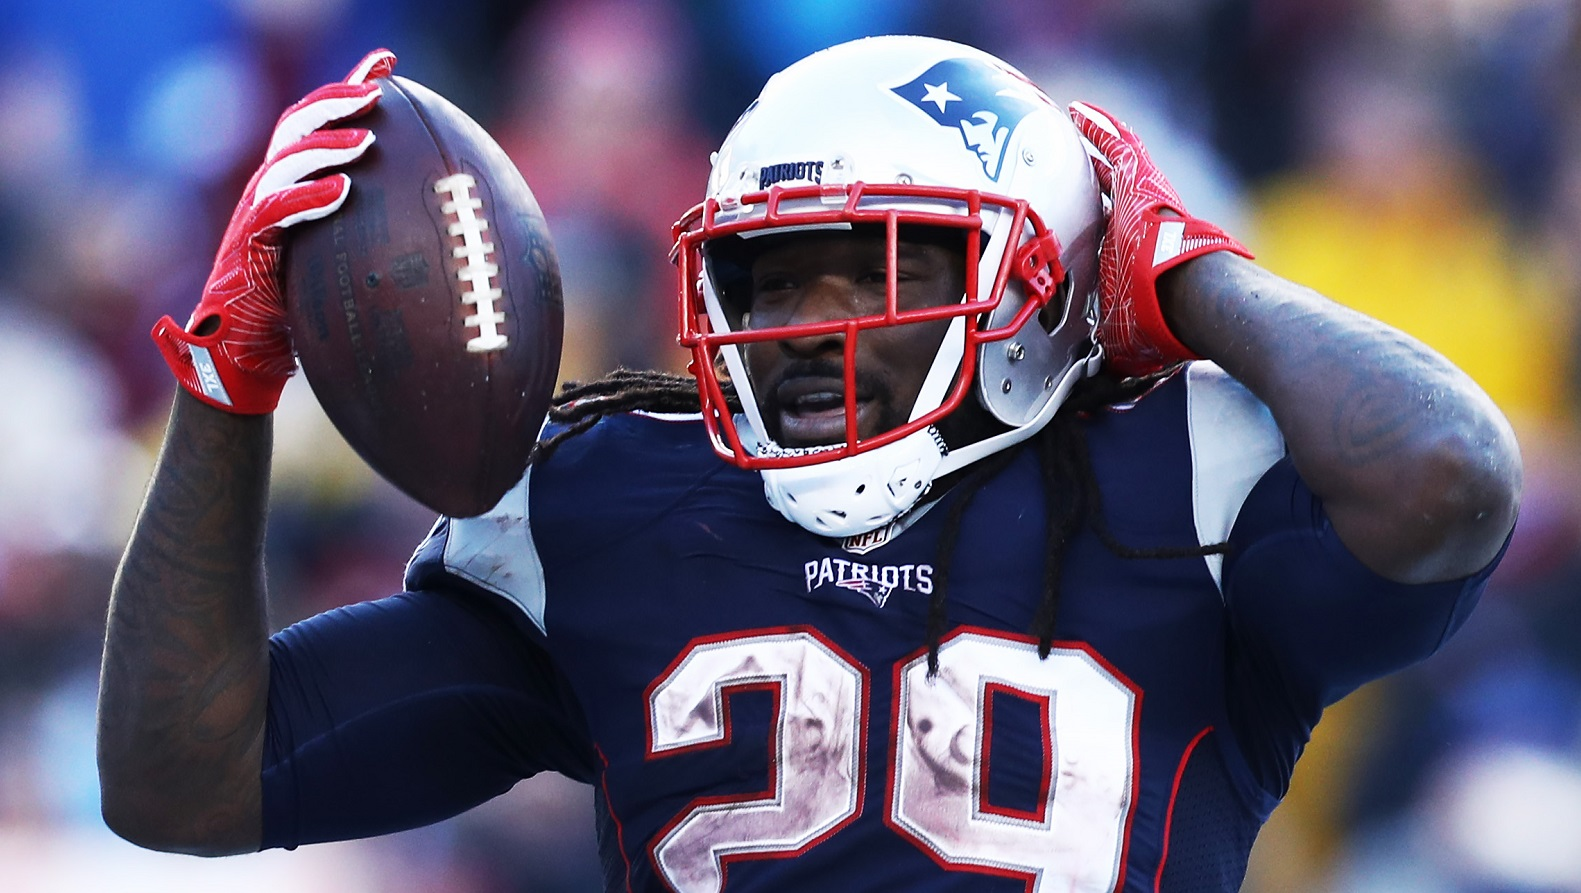 FOXBORO, MA - DECEMBER 24: LeGarrette Blount #29 of the New England Patriots celebrates after scoring a touchdown against the New York Jets  during the first half at Gillette Stadium on December 24, 2016 in Foxboro, Massachusetts. (Photo by Maddie Meyer/Getty Images)